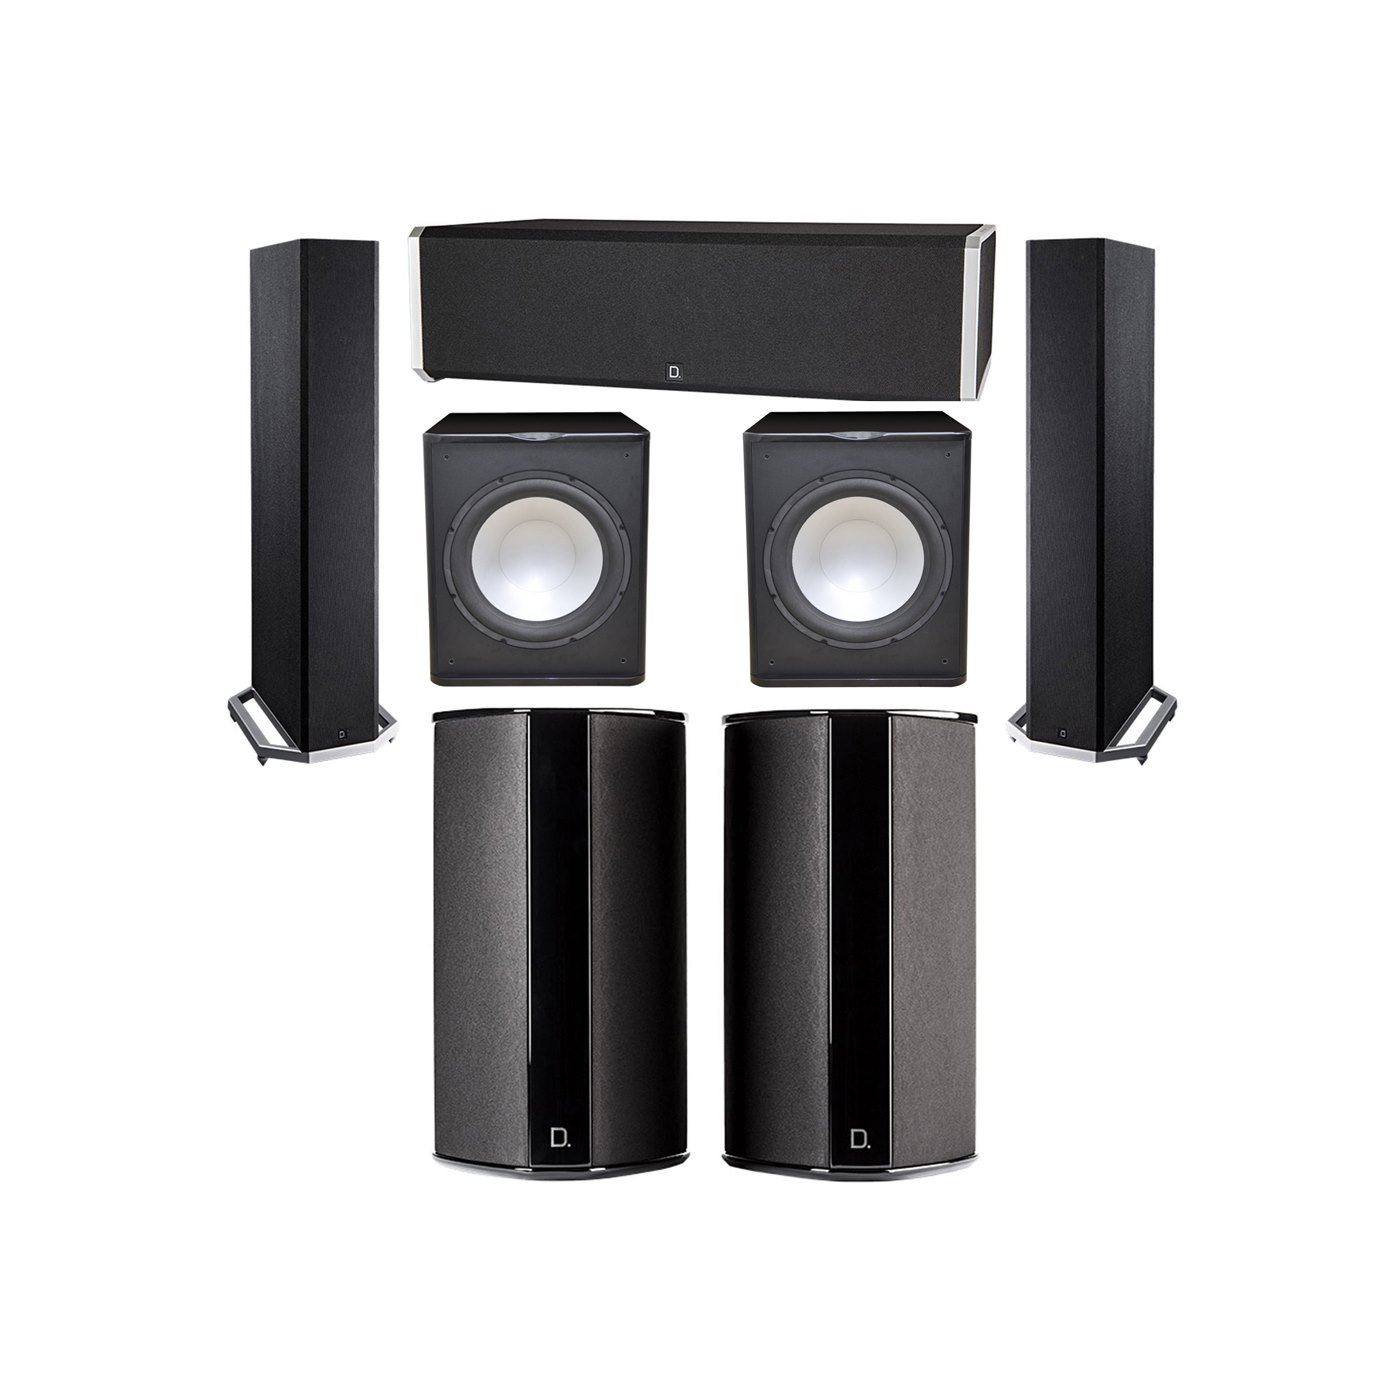 Definitive Technology 5.2 System with 2 BP9020 Tower Speakers, 1 CS9040 Center Channel Speaker, 2 SR9080 Surround Speaker, 2 Premier Acoustic PA-150 Subwoofer